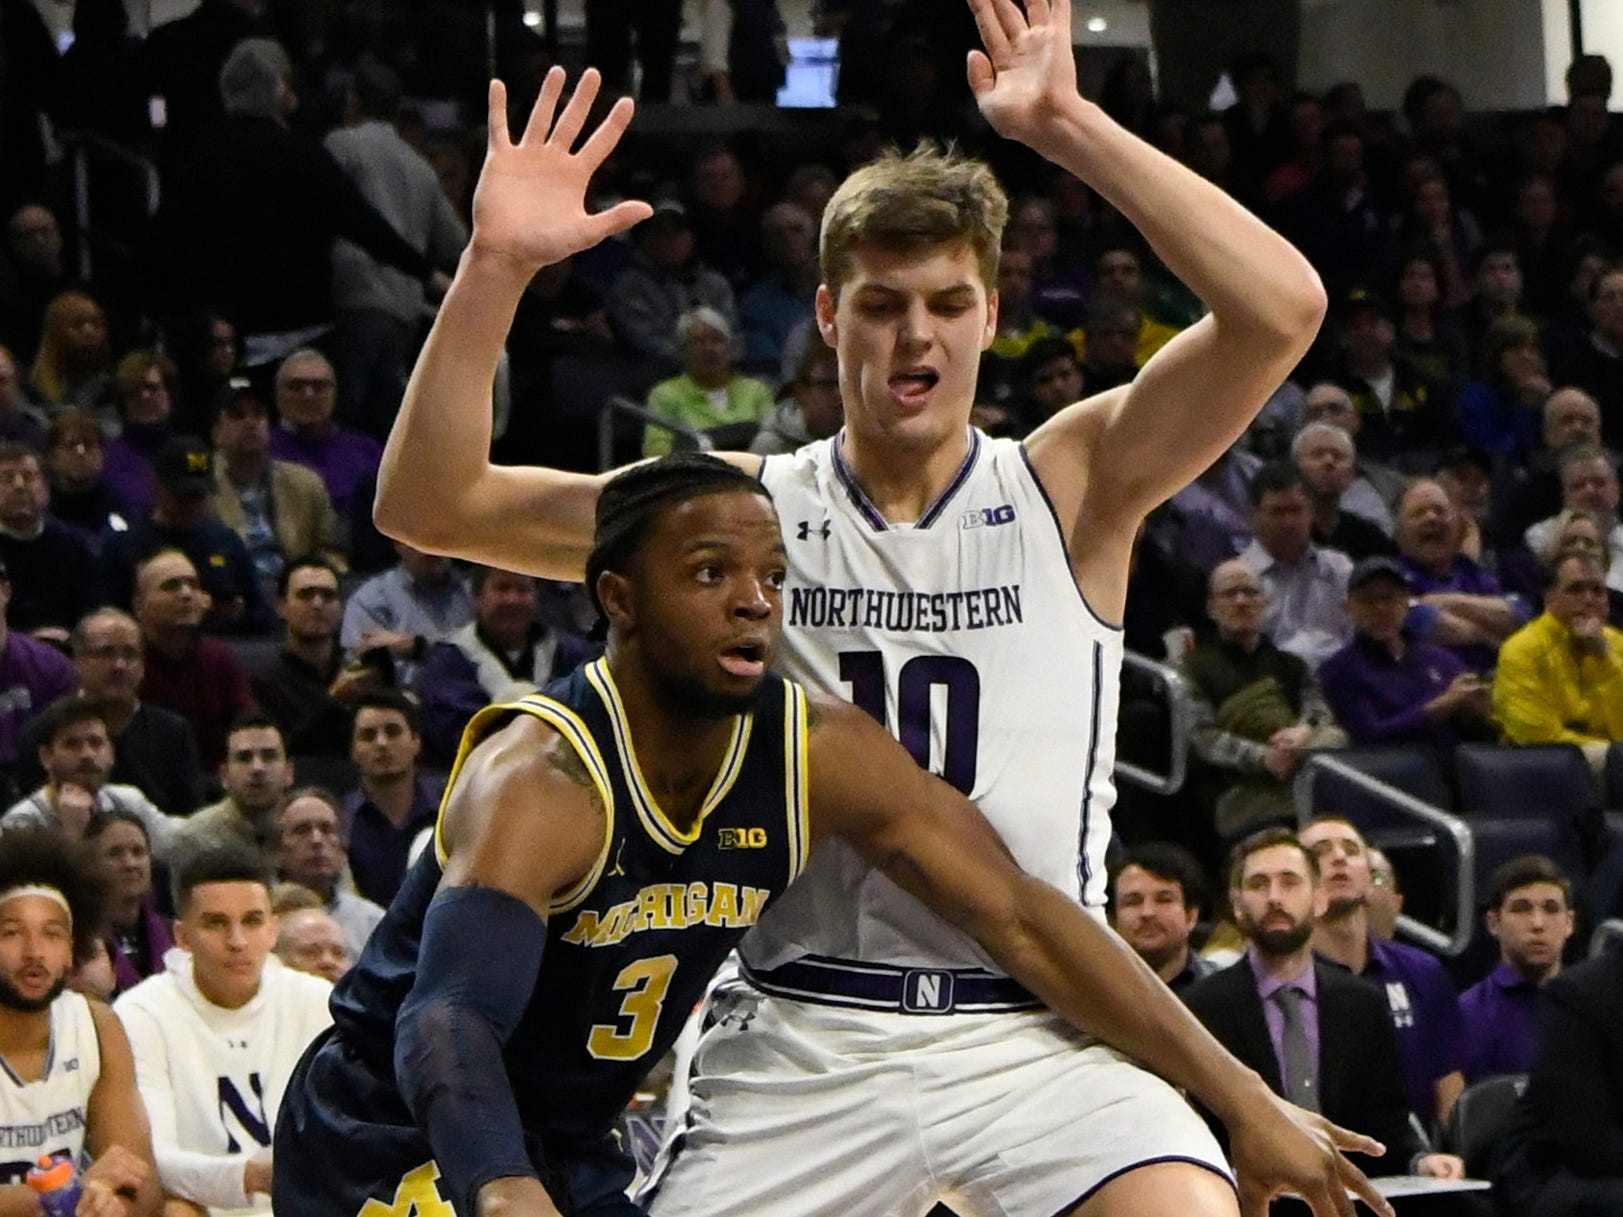 Michigan guard Zavier Simpson is defended by Northwestern forward Miller Kopp during the first half at Welsh-Ryan Arena, Dec. 4, 2018 in Evanston, Ill.